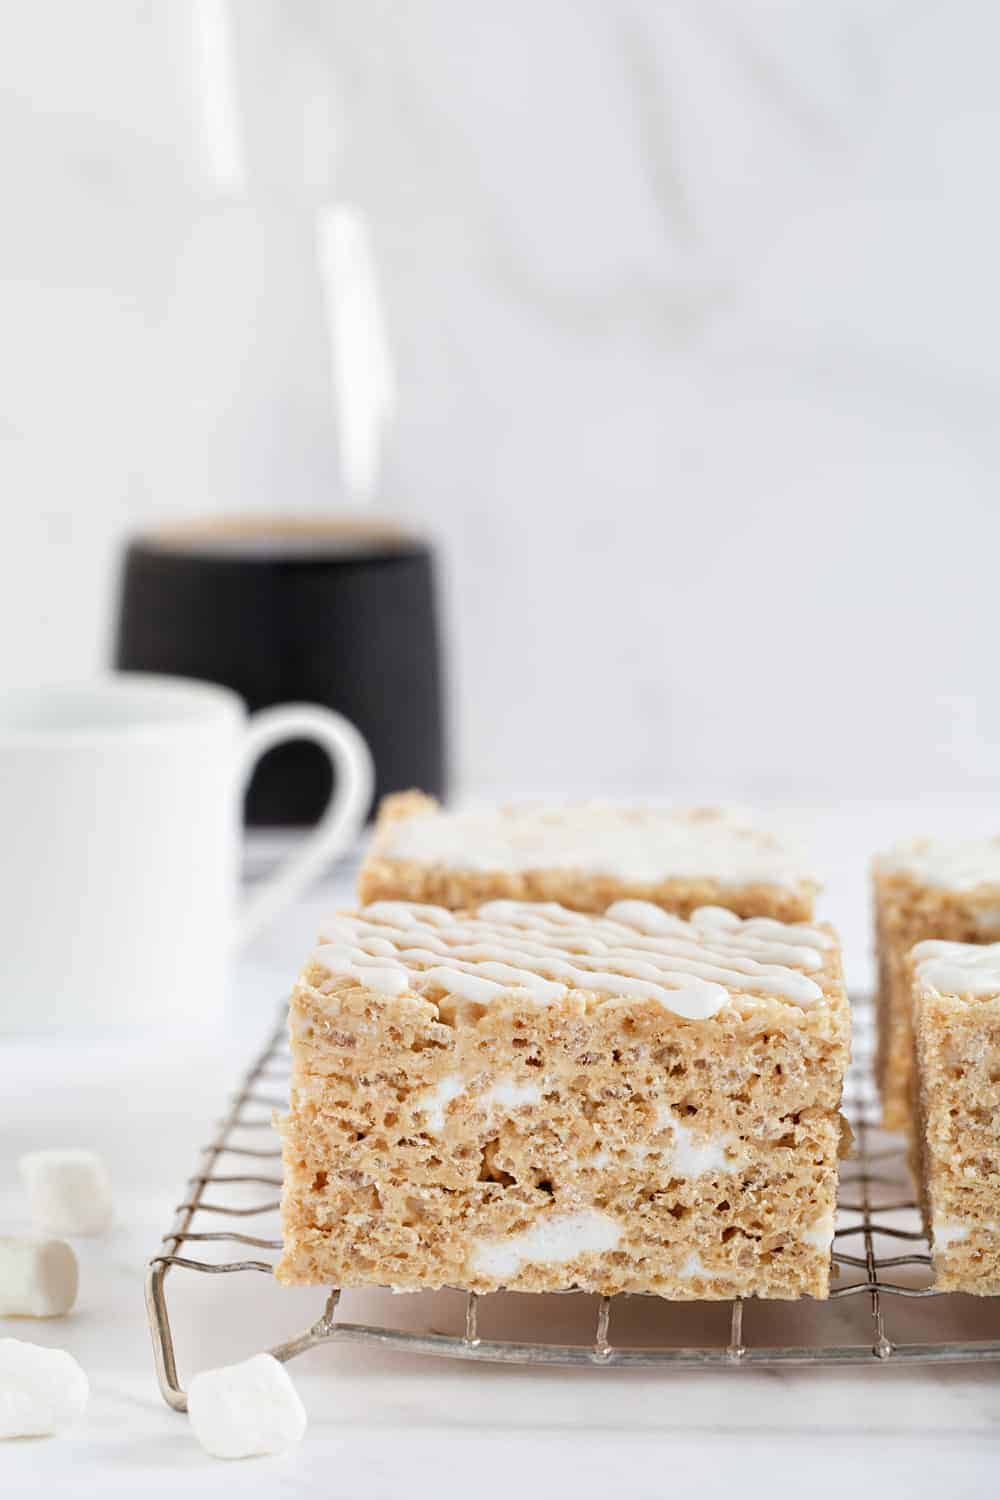 Brown Butter Rice Krispie Treats take your favorite marshmallow treats to the next level. So good!